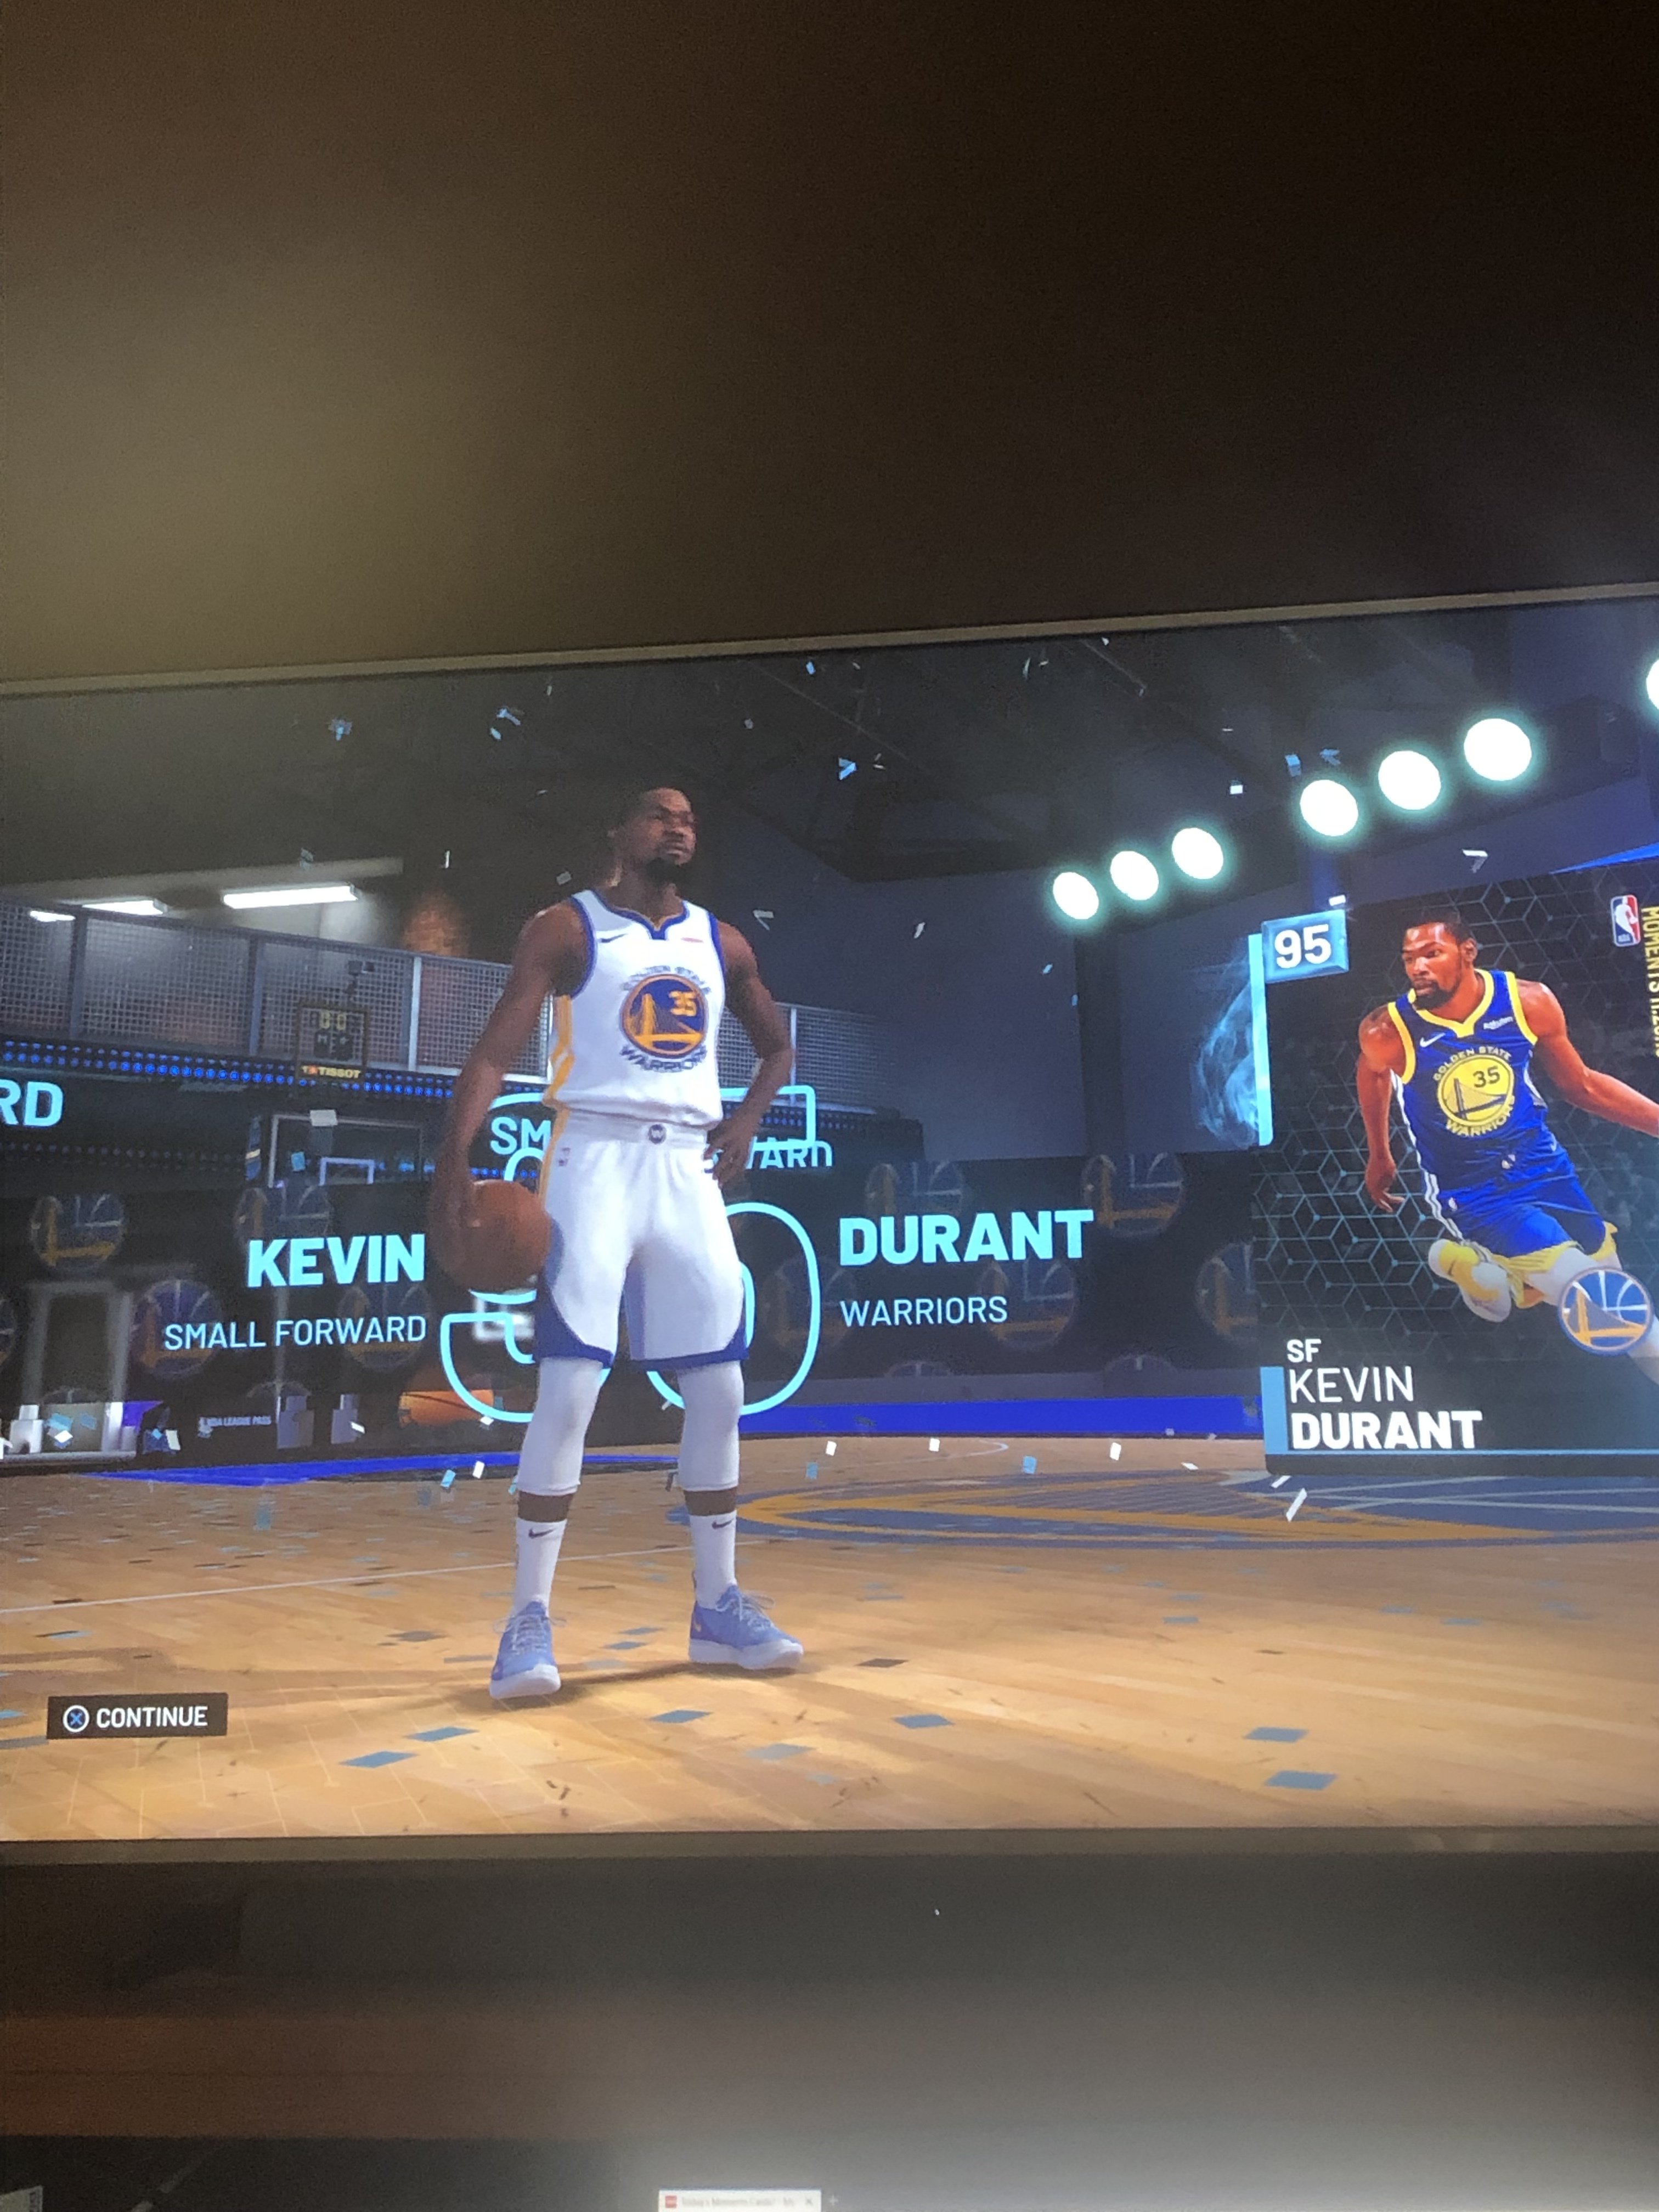 Today's Moments Cards? - myteam - 2K Gamer - NBA 2K Forums